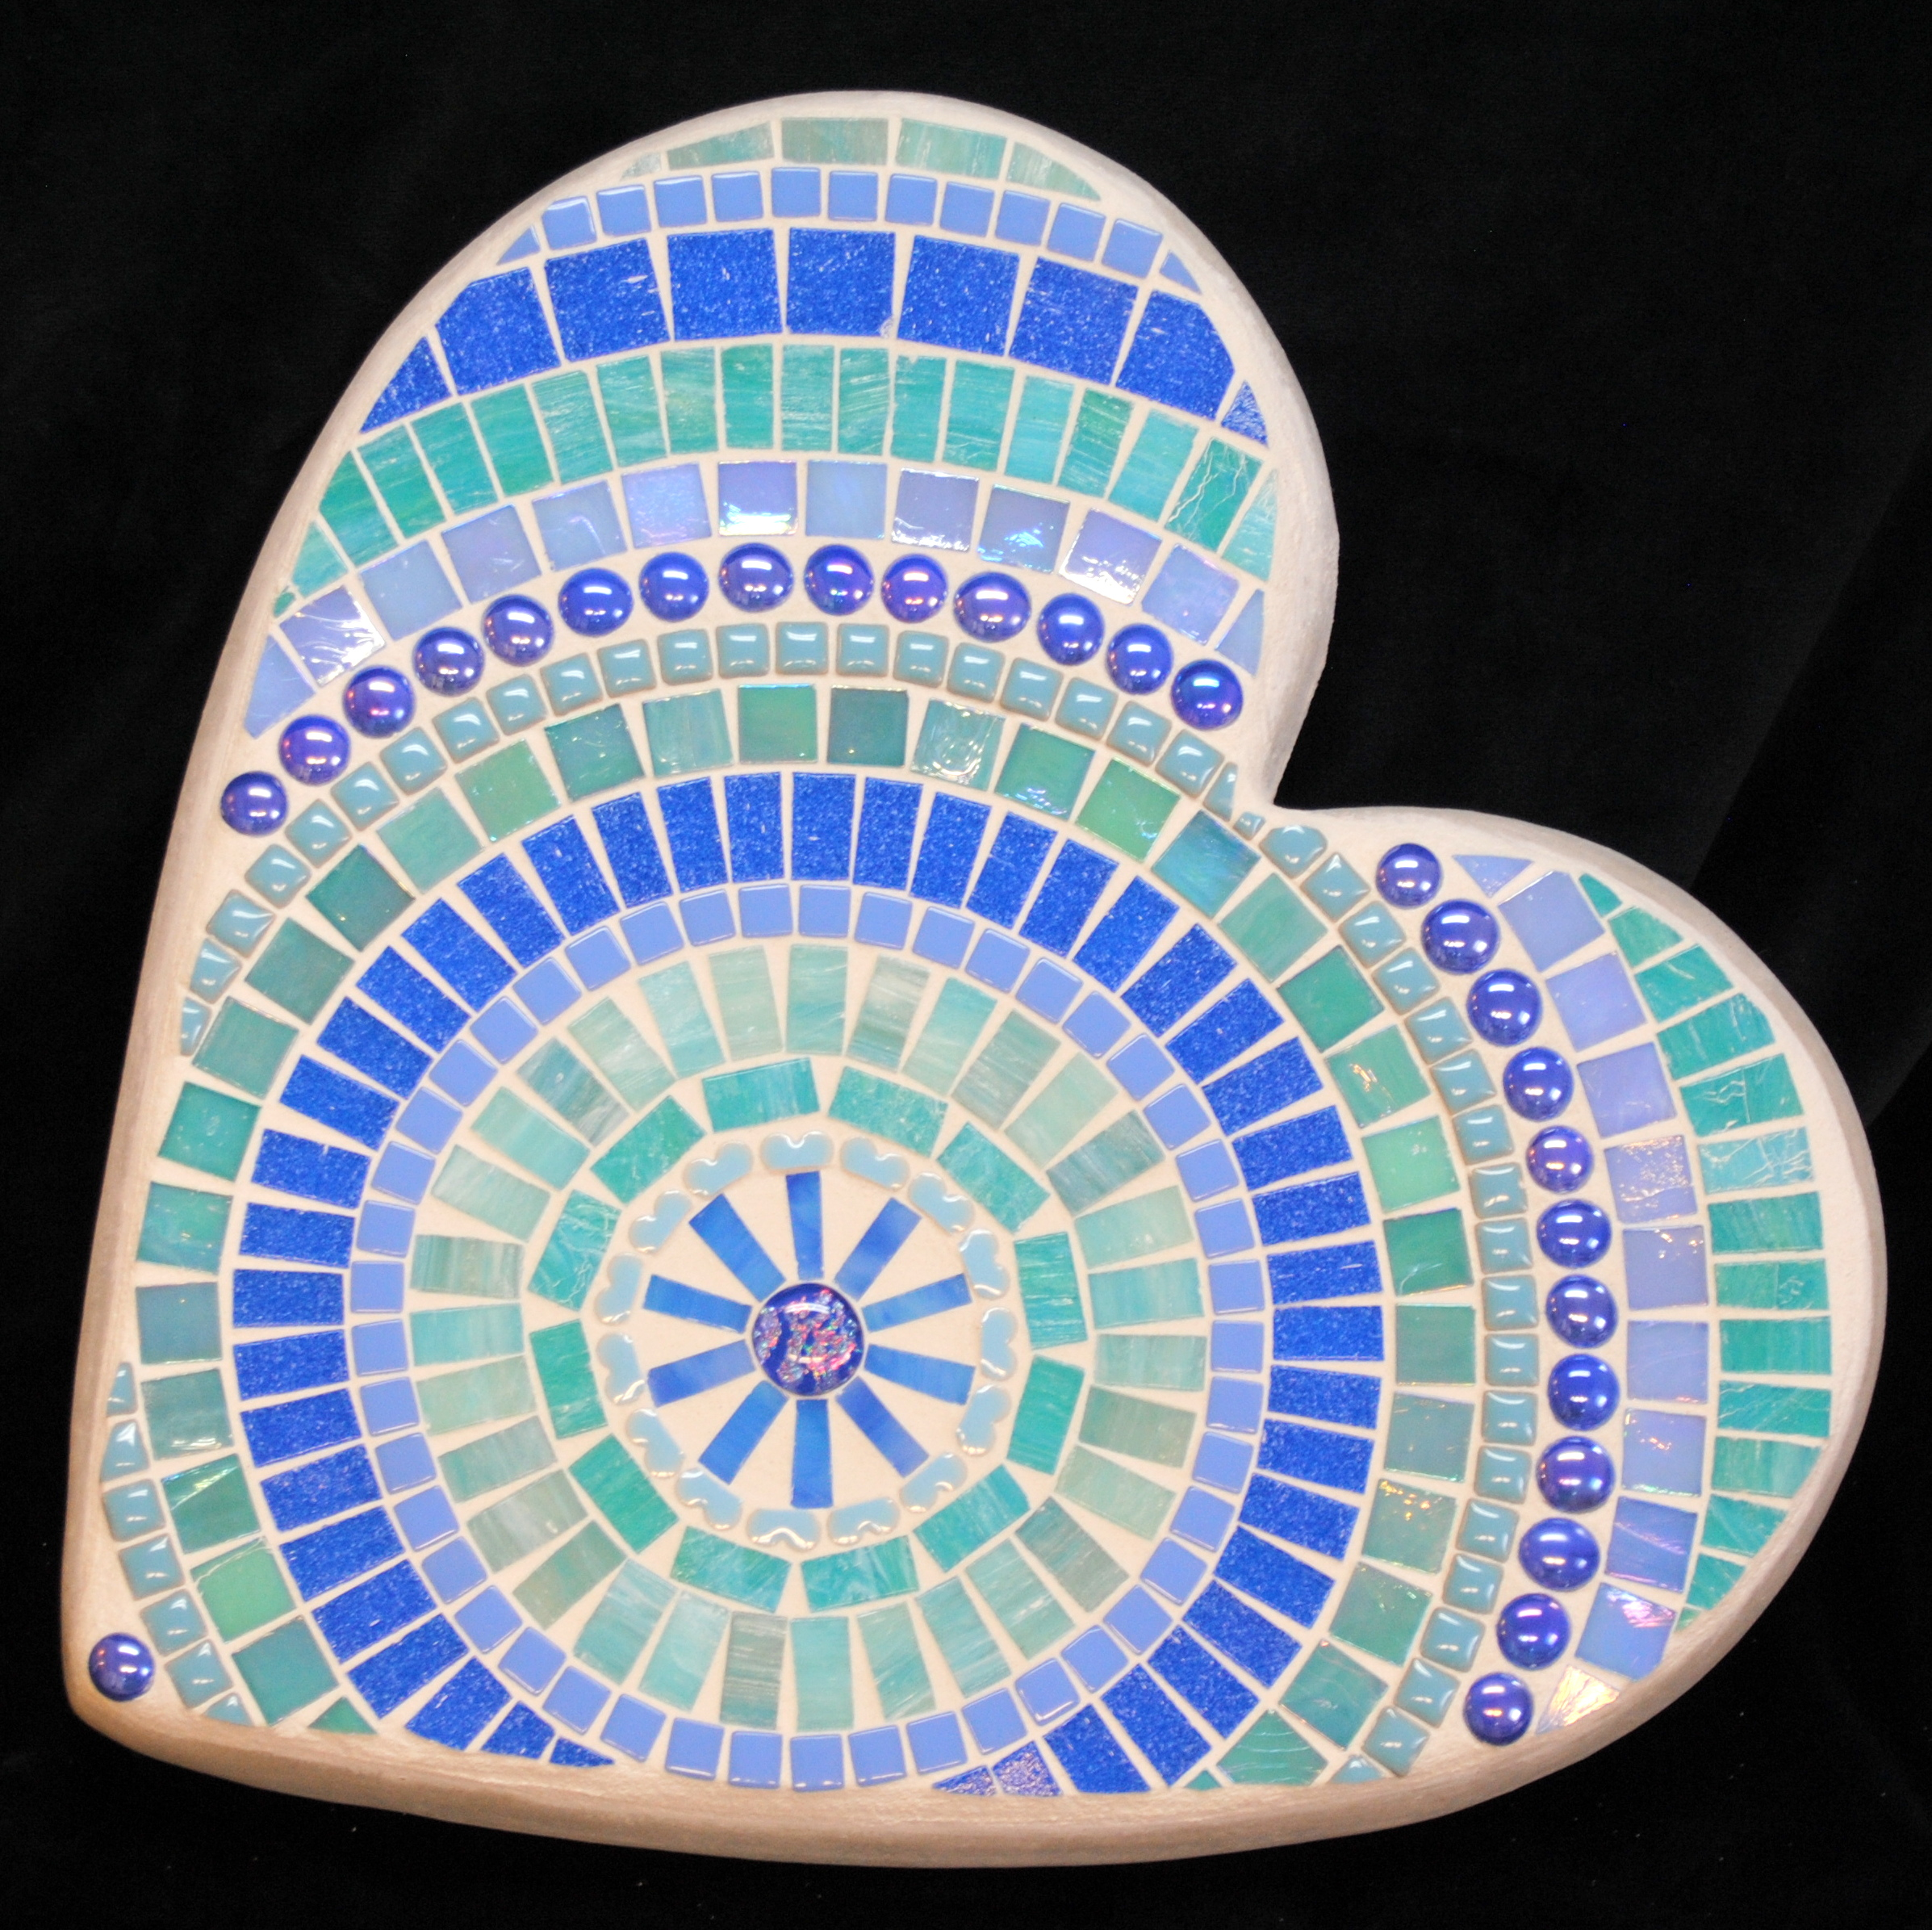 Calm SeasLarge Heart Mosaic Stepping Stone by Brenda Pokorny